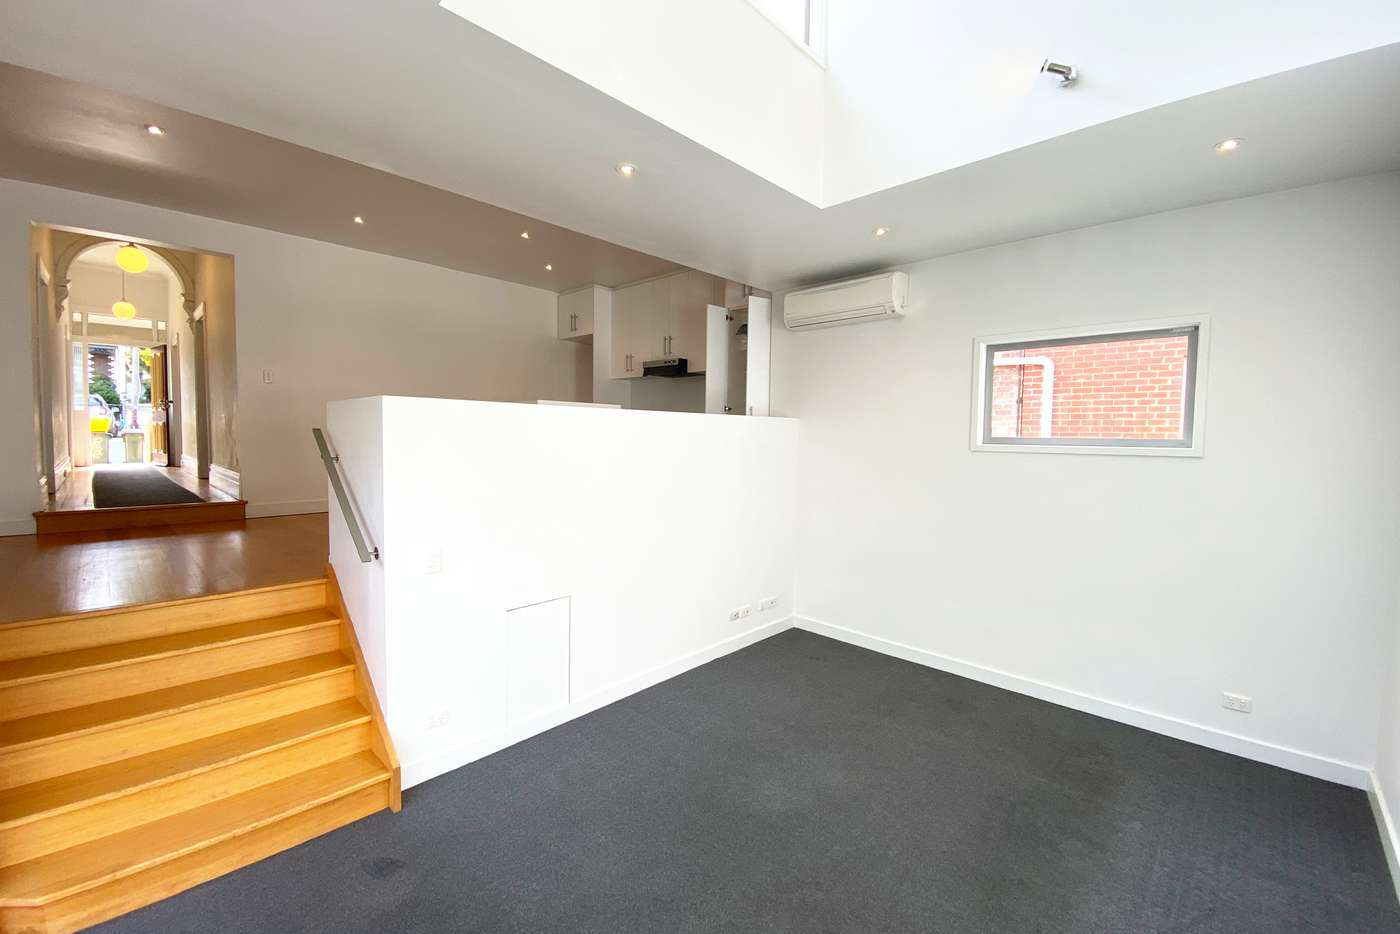 Sixth view of Homely house listing, 15 Council Street, Clifton Hill VIC 3068